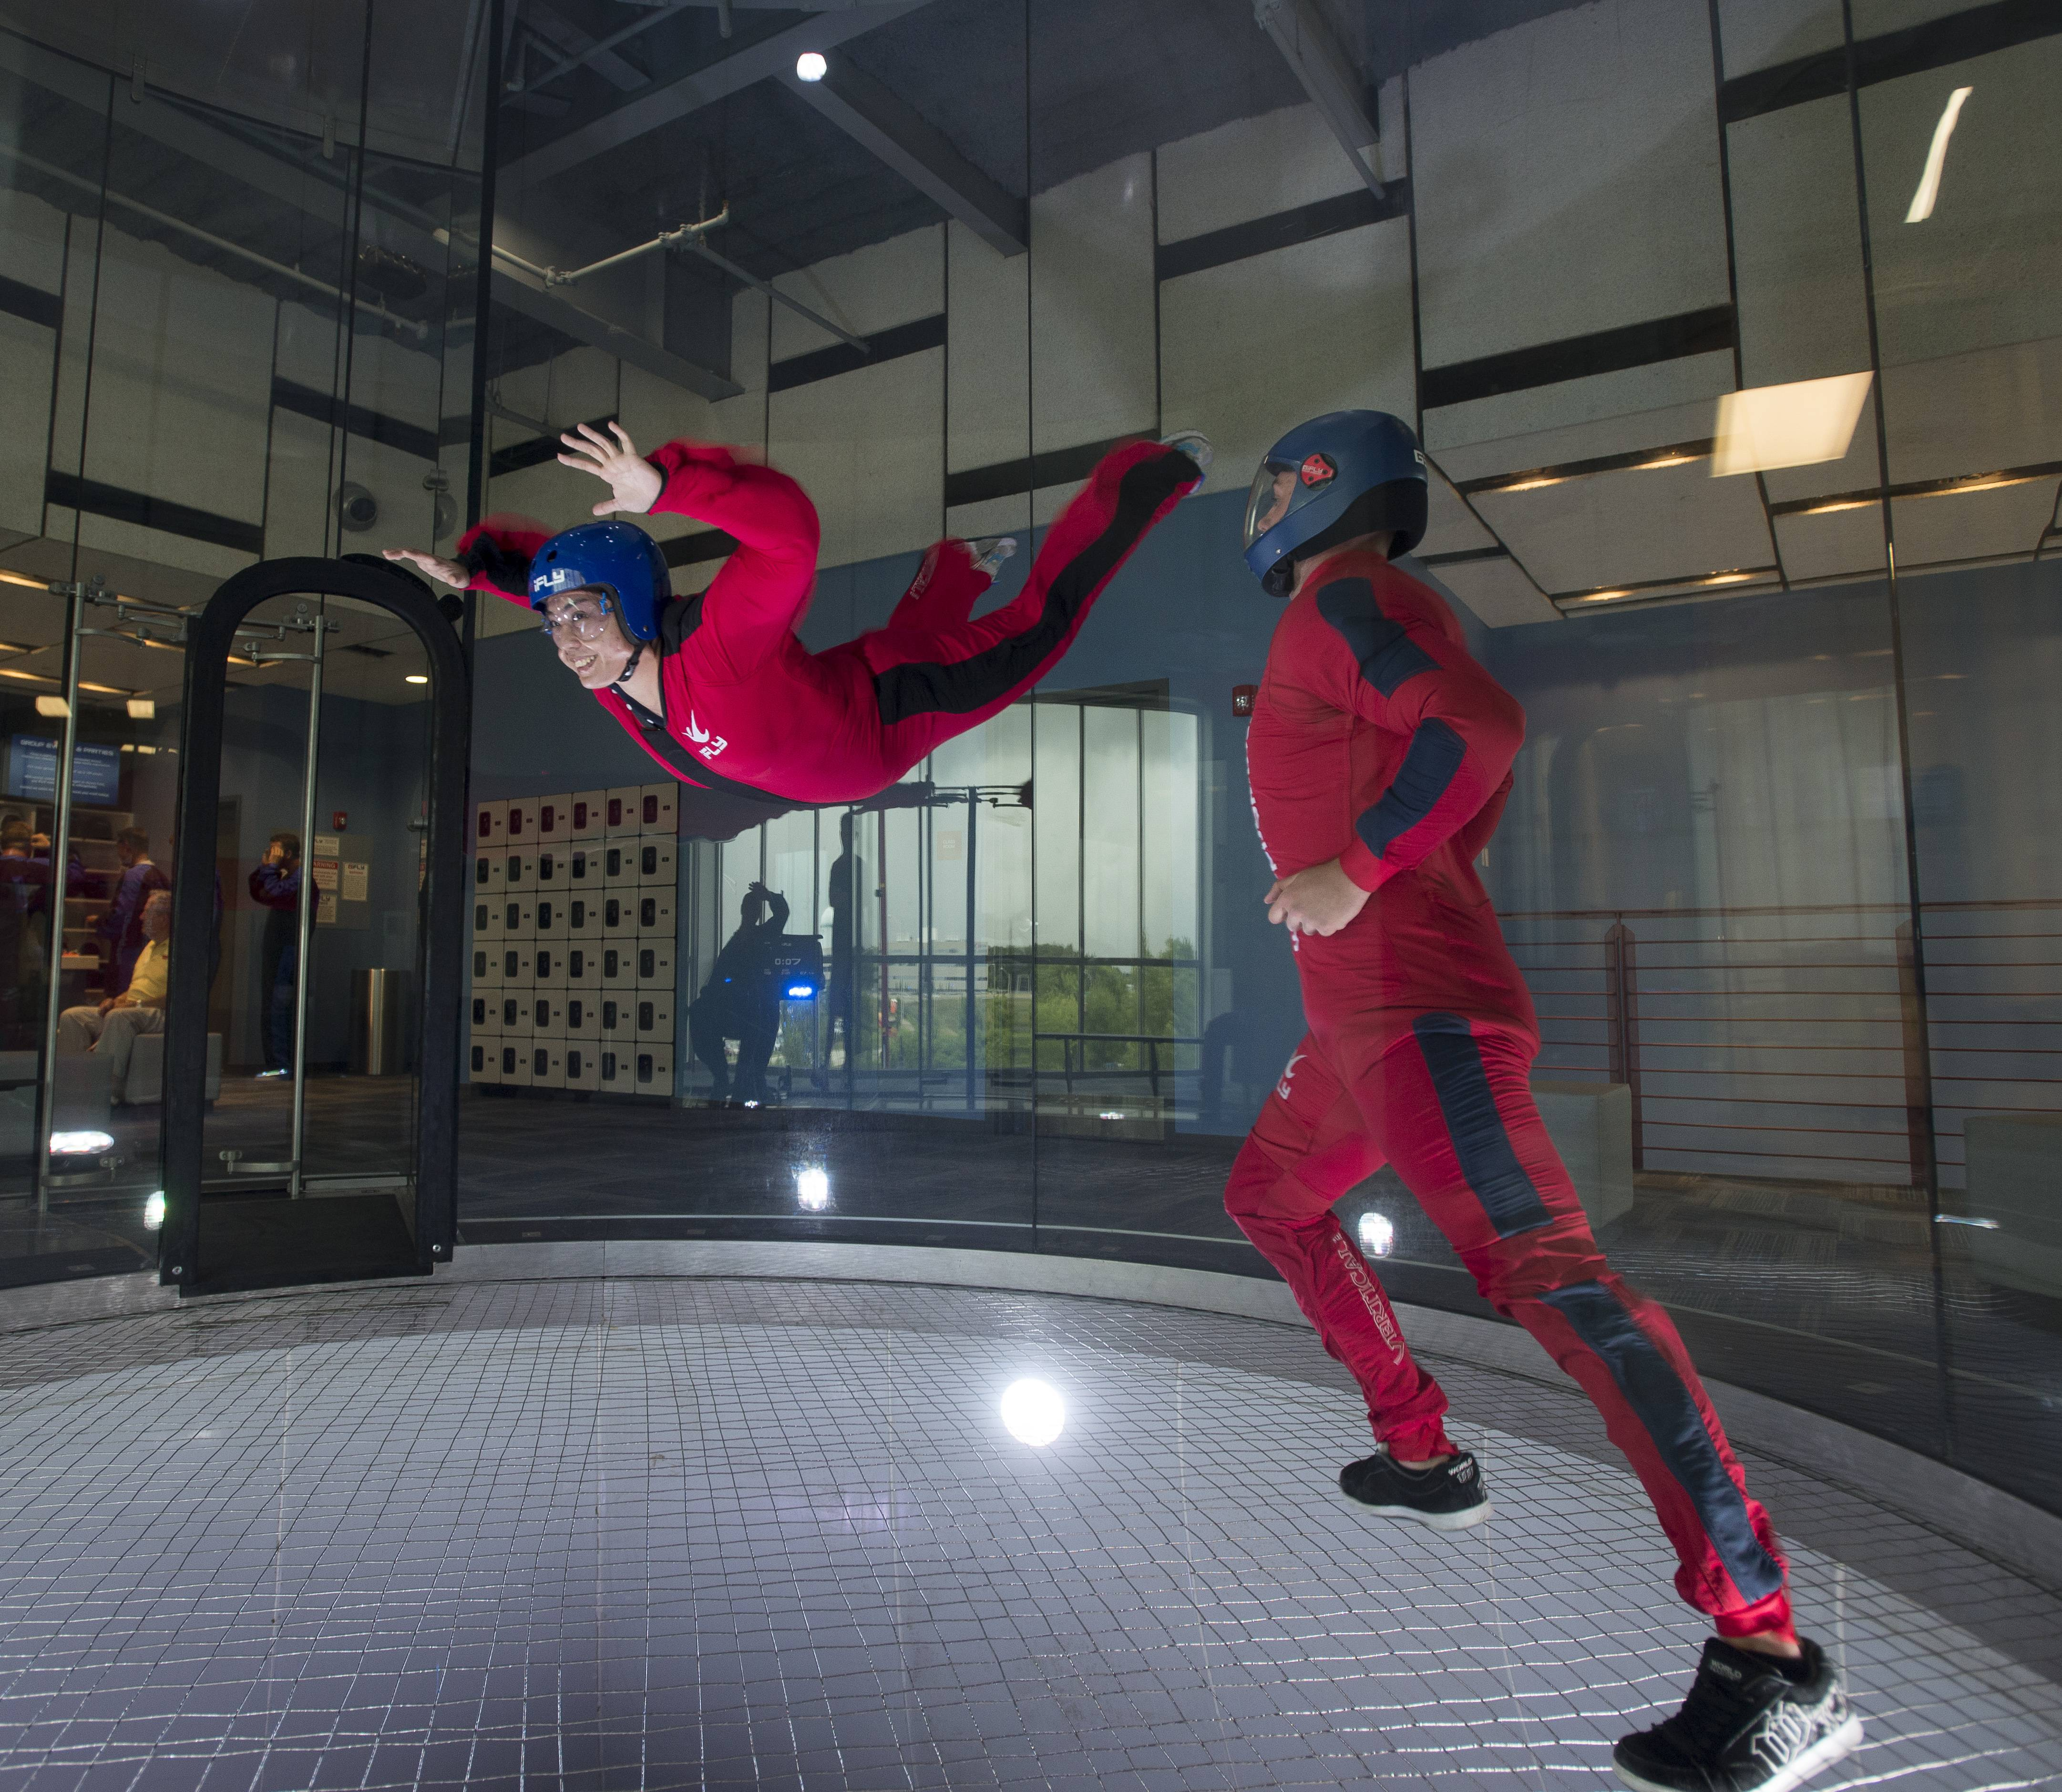 Genevieve Nacario of Lisle tries out the new iFly indoor sky-diving venue, which opened Friday in Naperville.